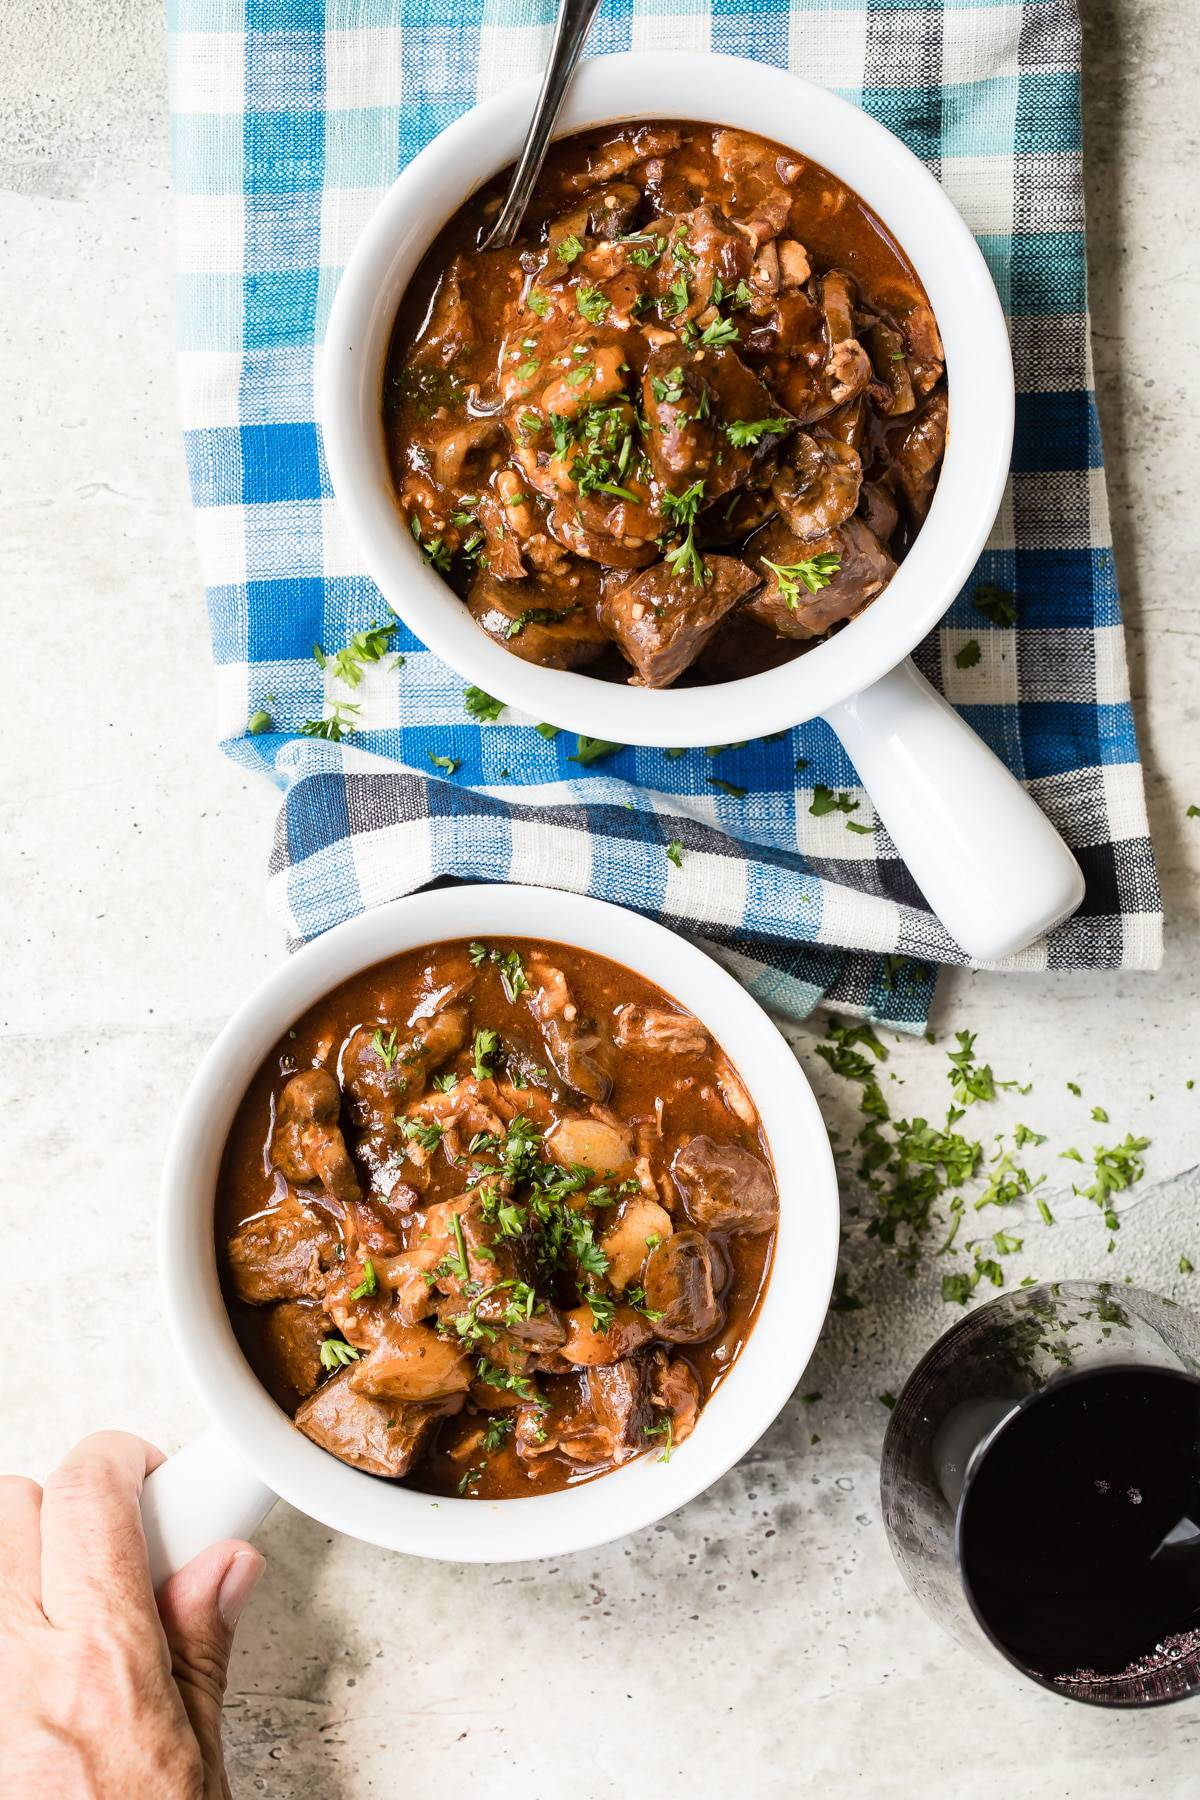 Beef Stew with Mushrooms In The Instant Pot